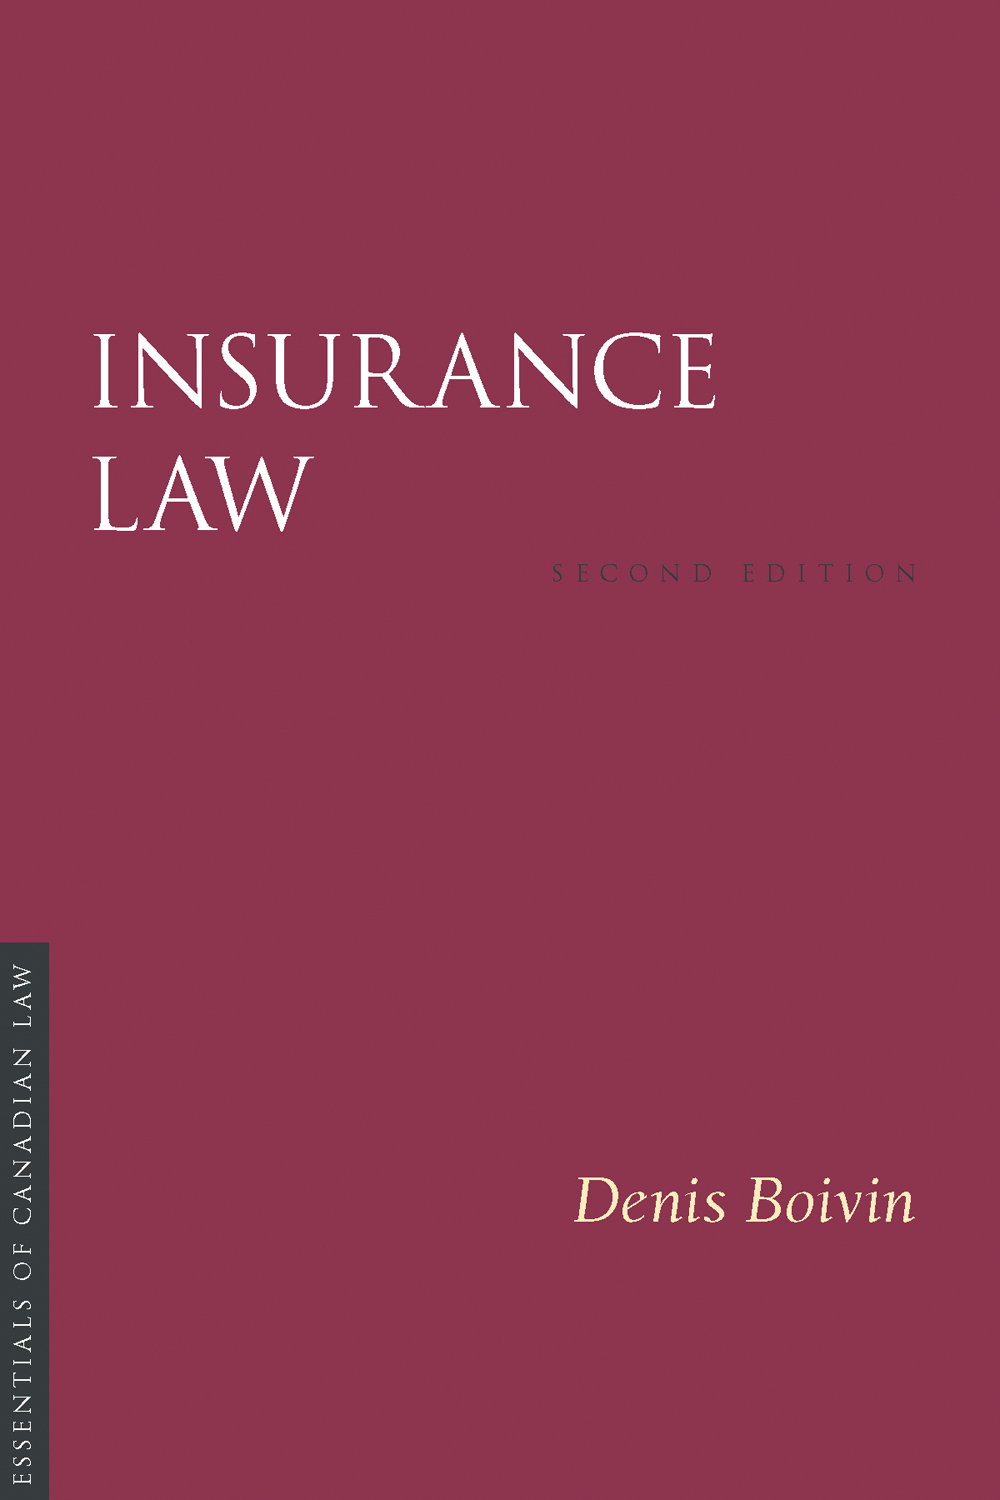 Book cover for Insurance Law for Denis Boivin. The cover is a solid burgundy colour with a simple type treatment in capital serif letters in white.